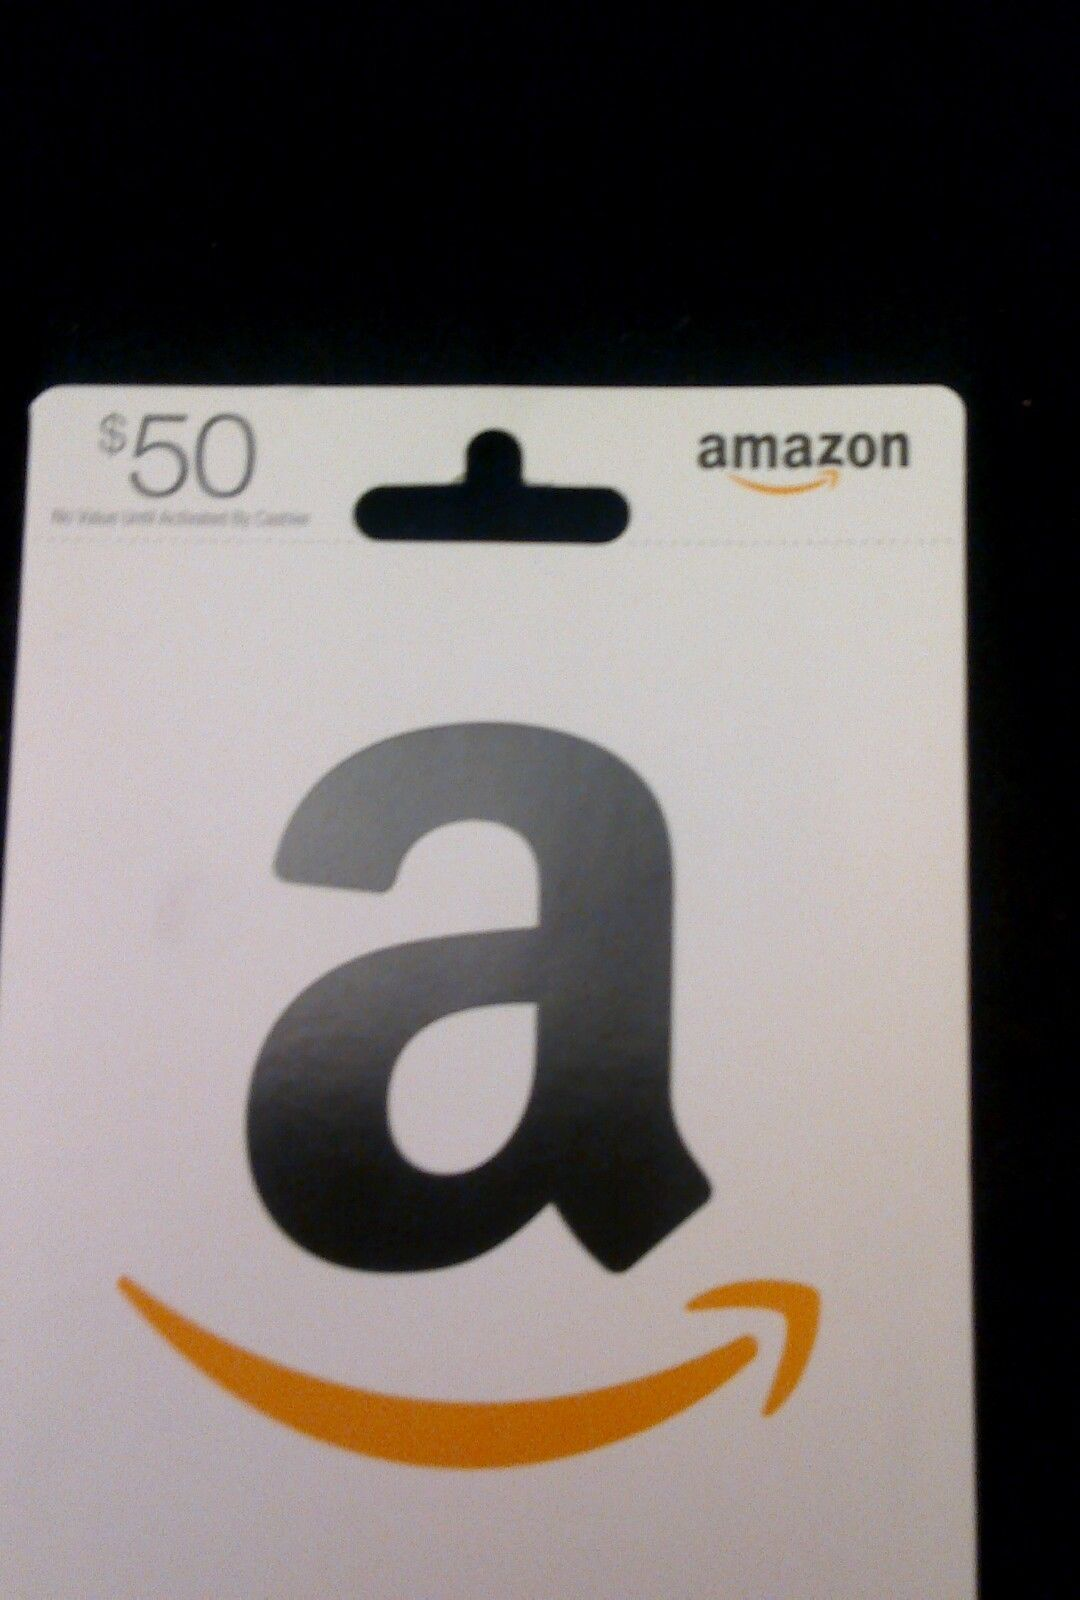 Coupons Card card amazon Sale gift Cards Amazon 50 Gifts amp; Card Gift Coupons